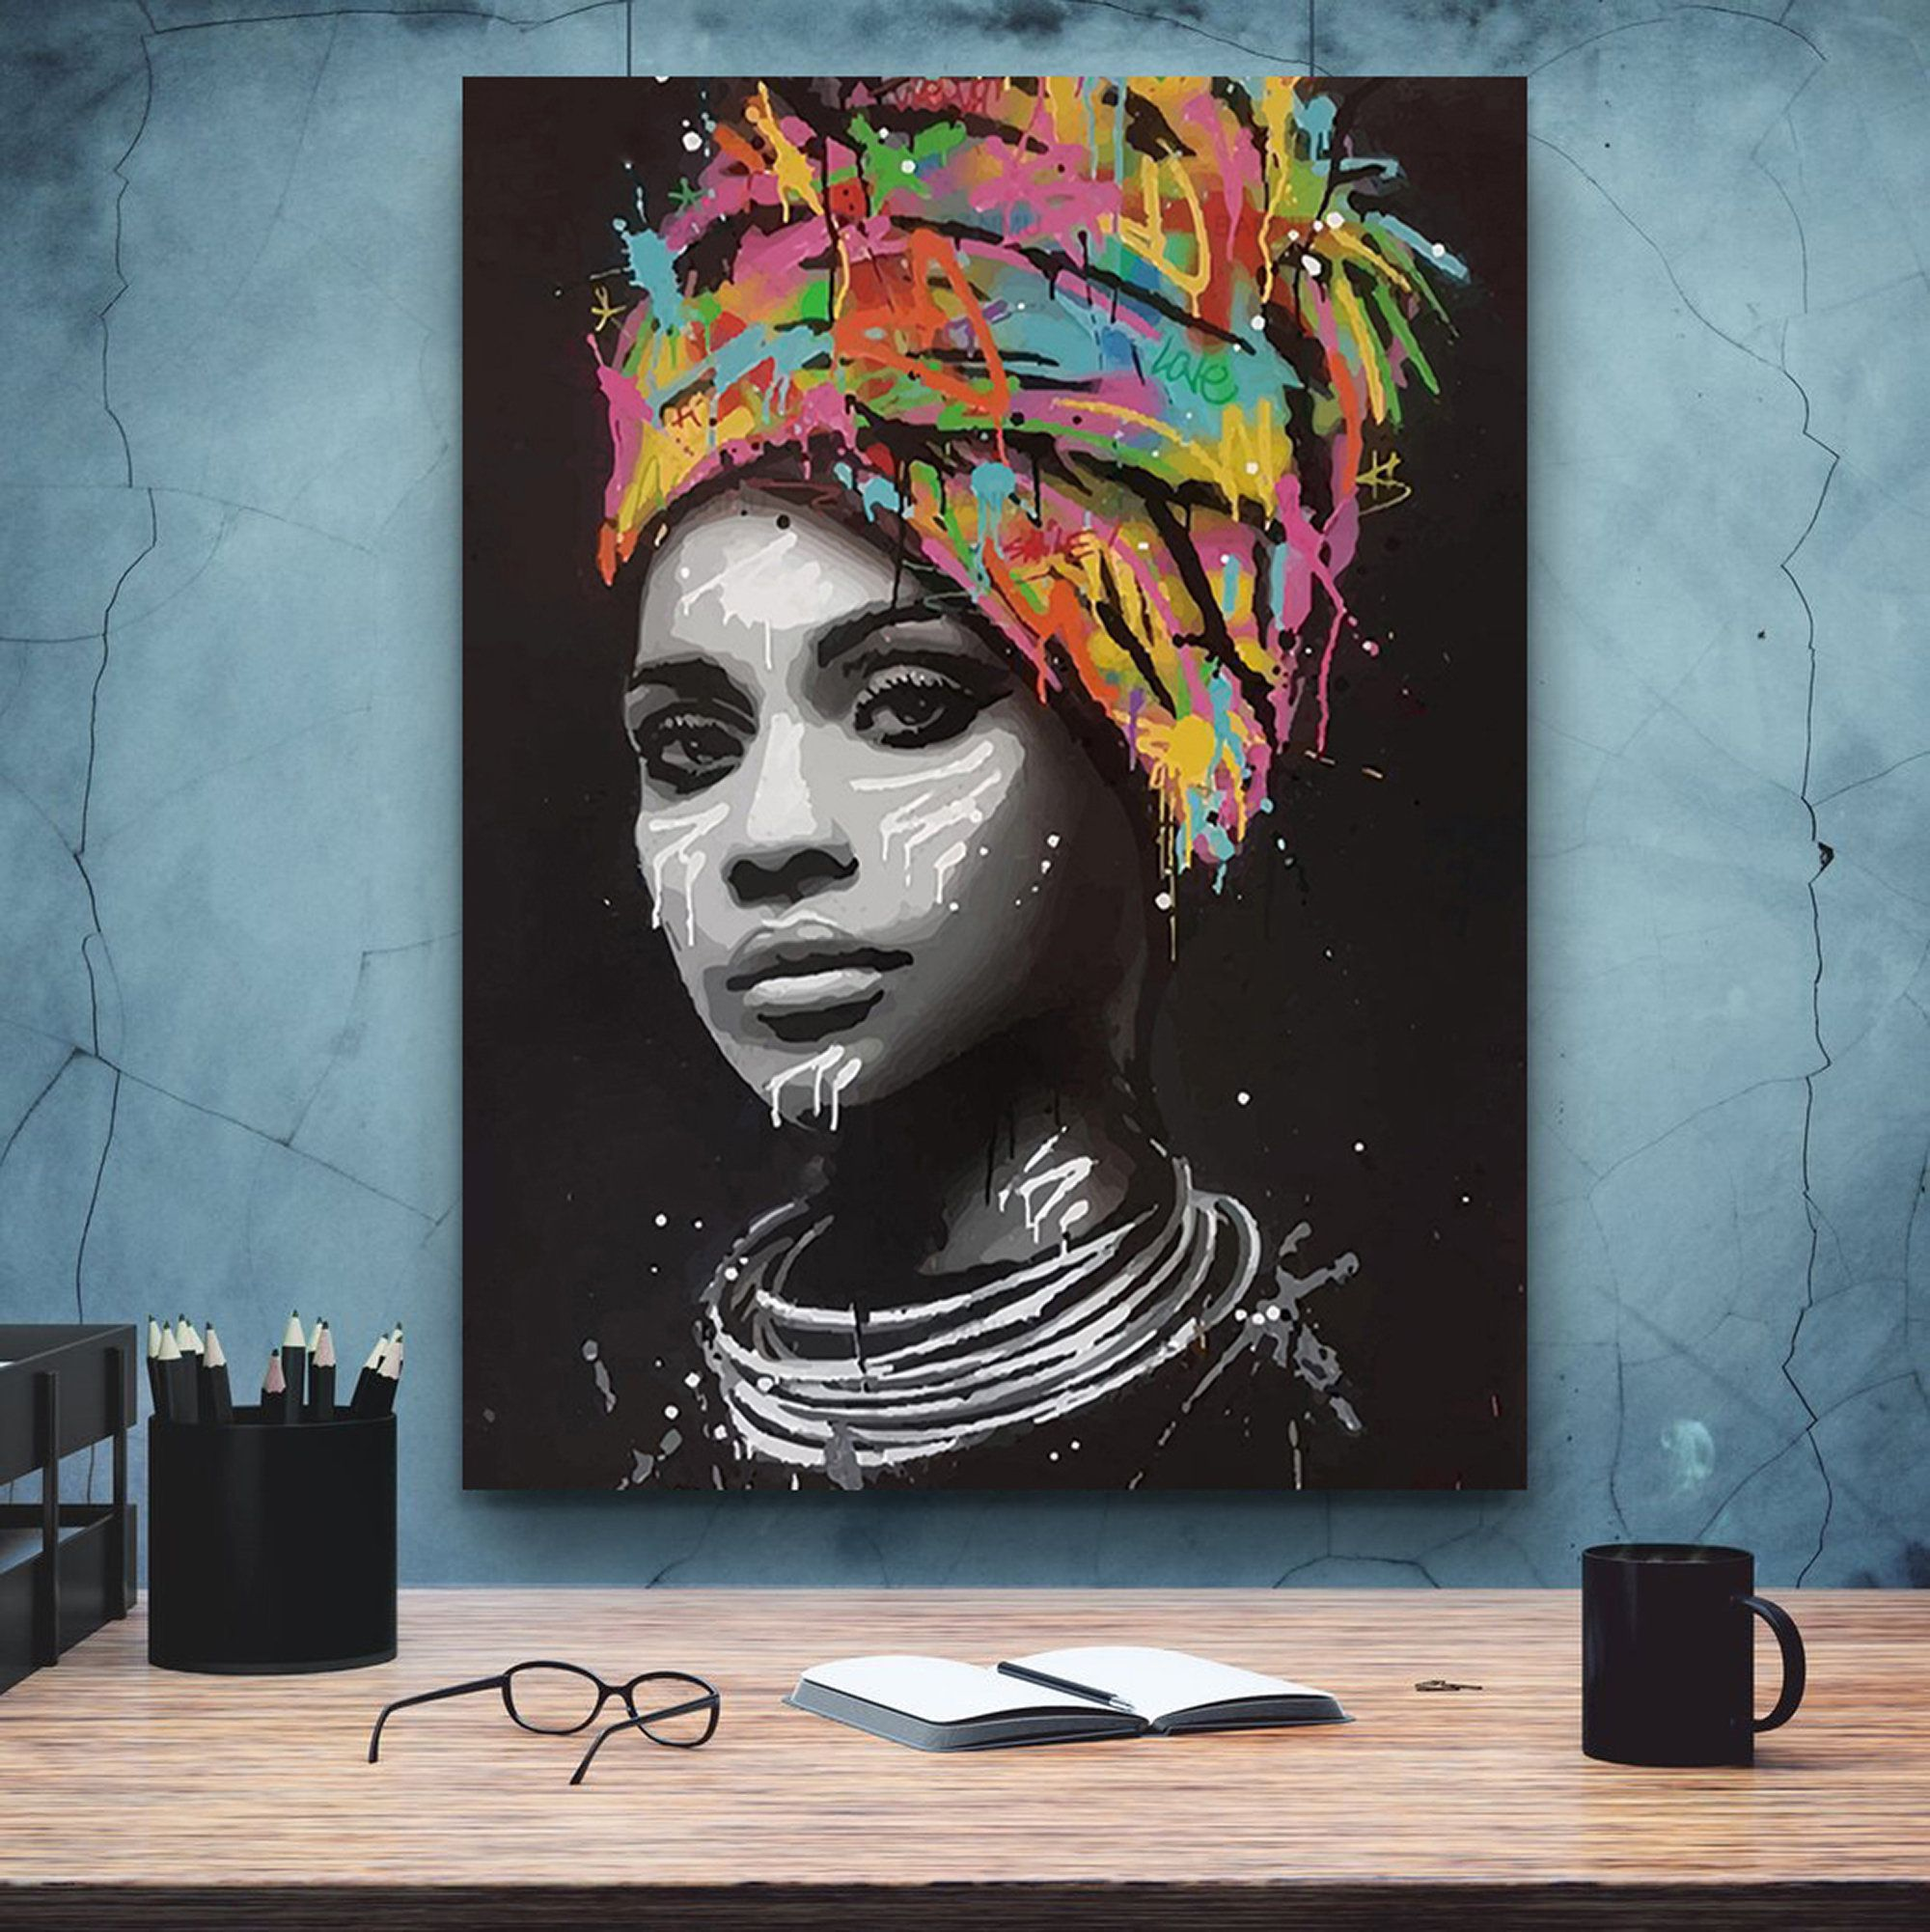 African American Woman Art2 Beauty Woman African Art Black Etsy Pop Art Canvas Modern Pop Art African Art